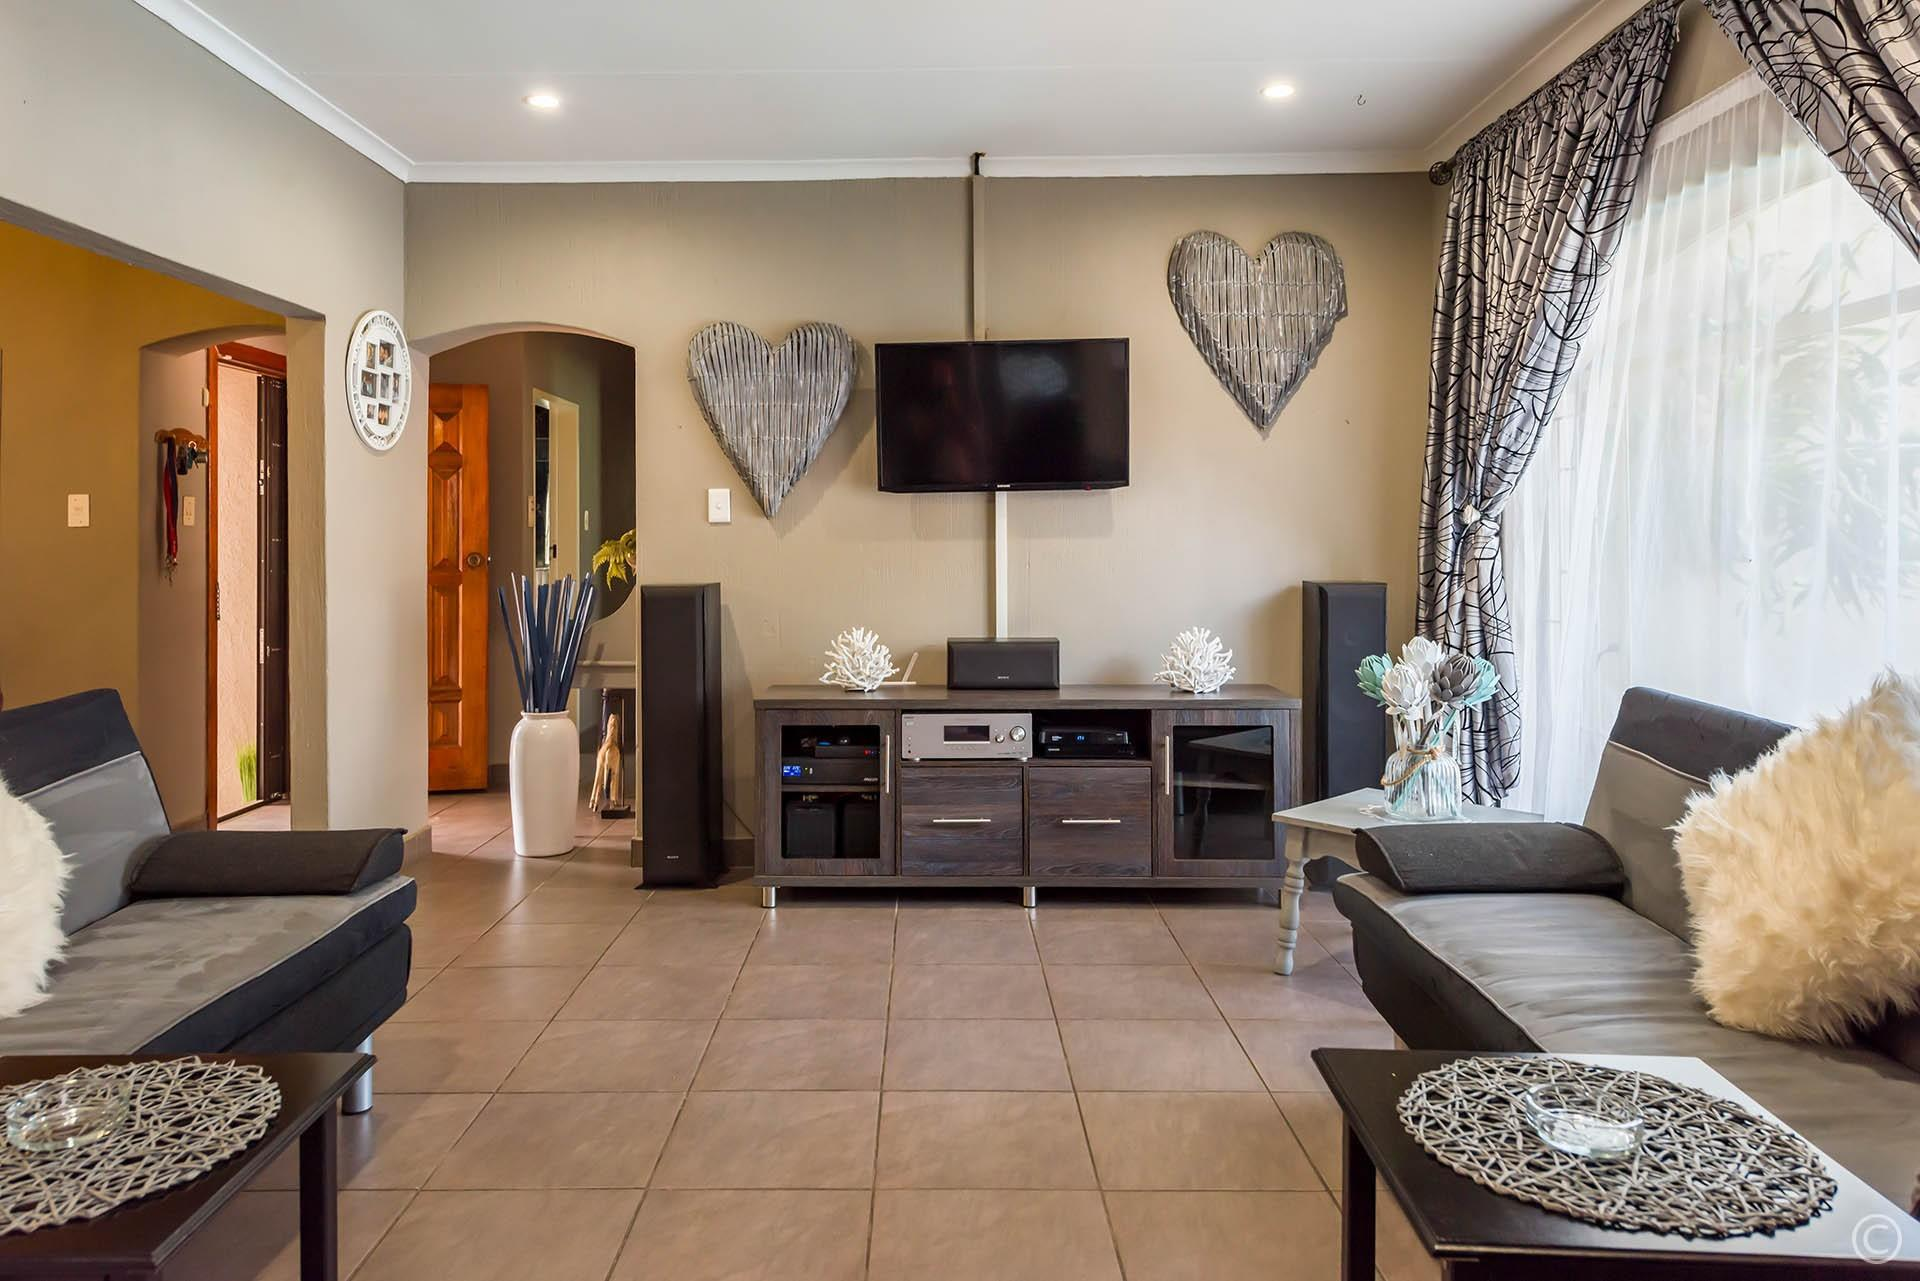 3 Bedroom House For Sale in Falcon Ridge